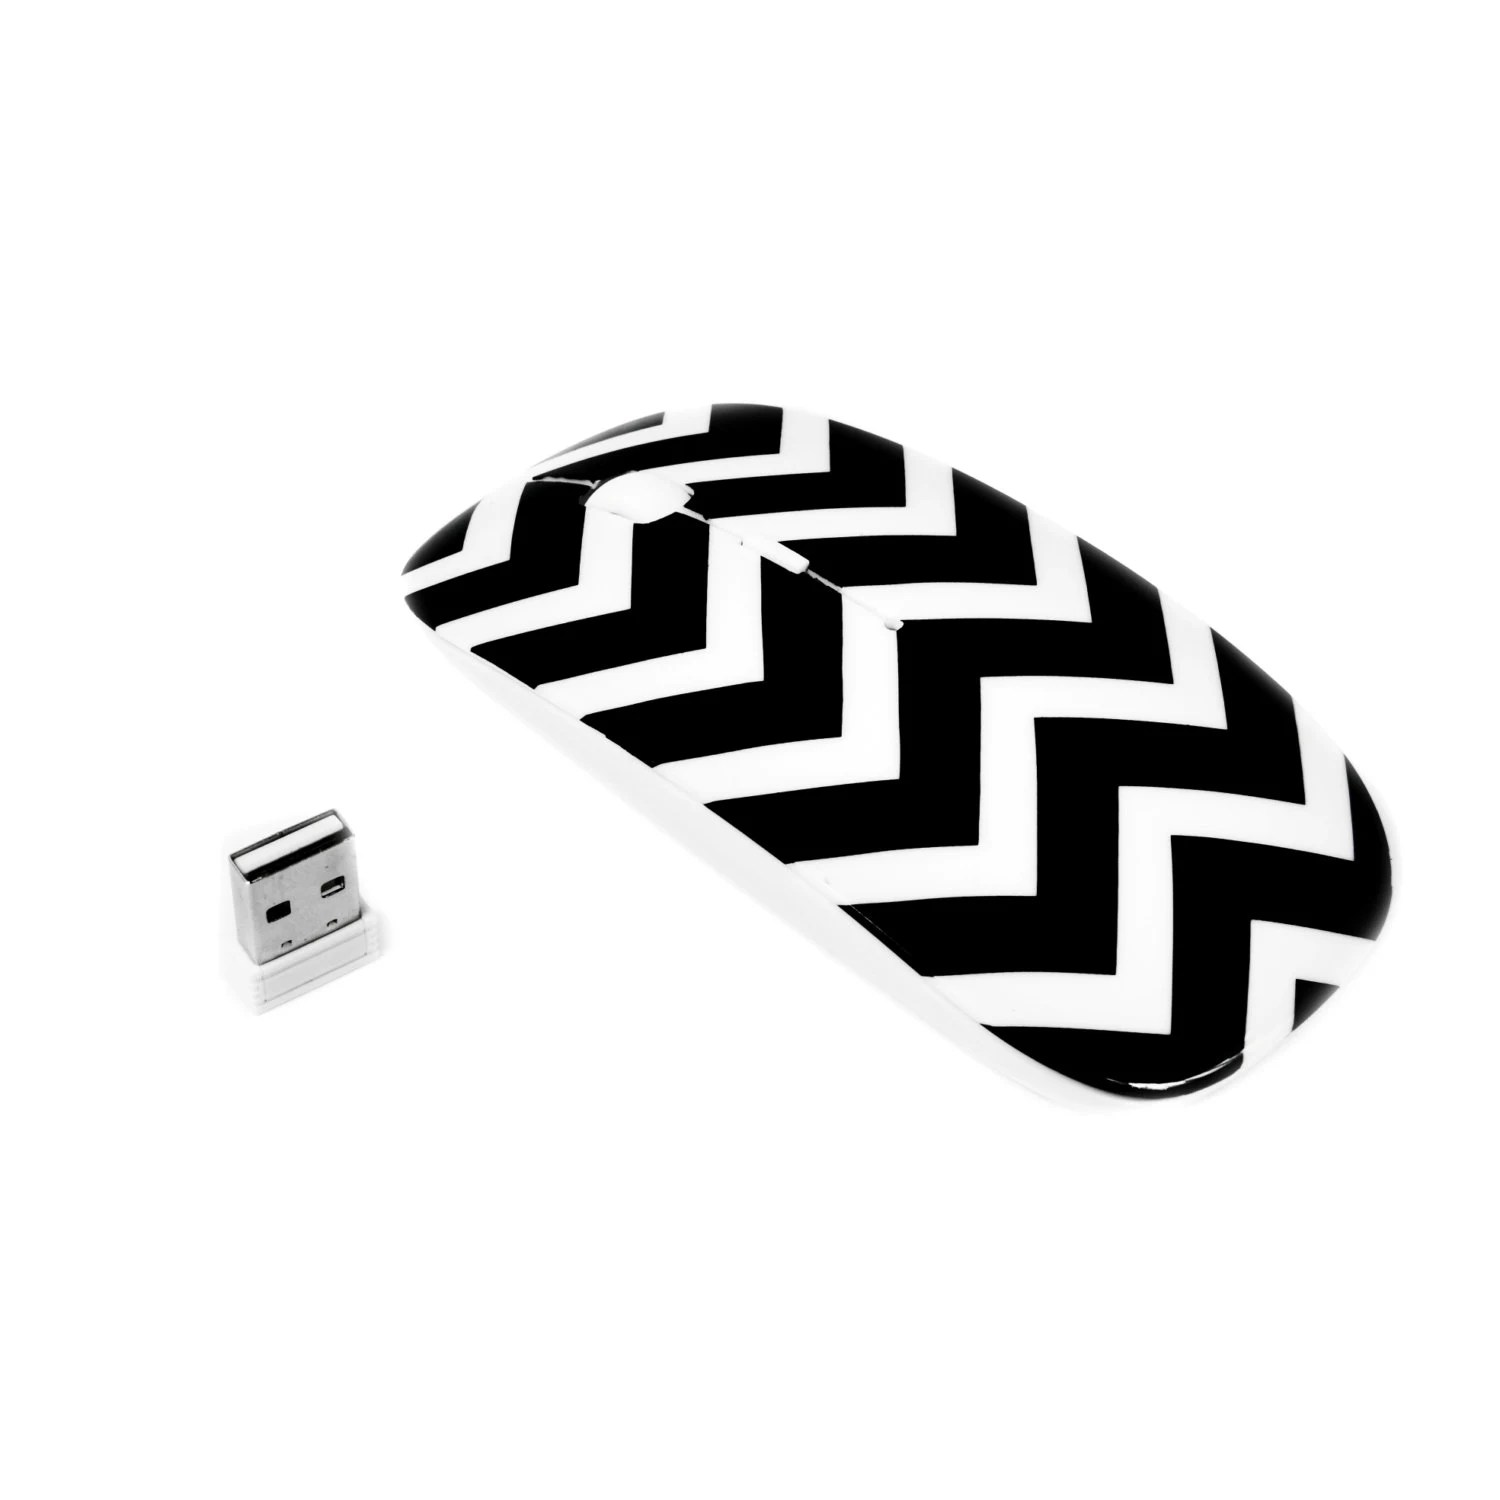 Chevron Series Black Usb Optical Wireless Mouse For Macbook